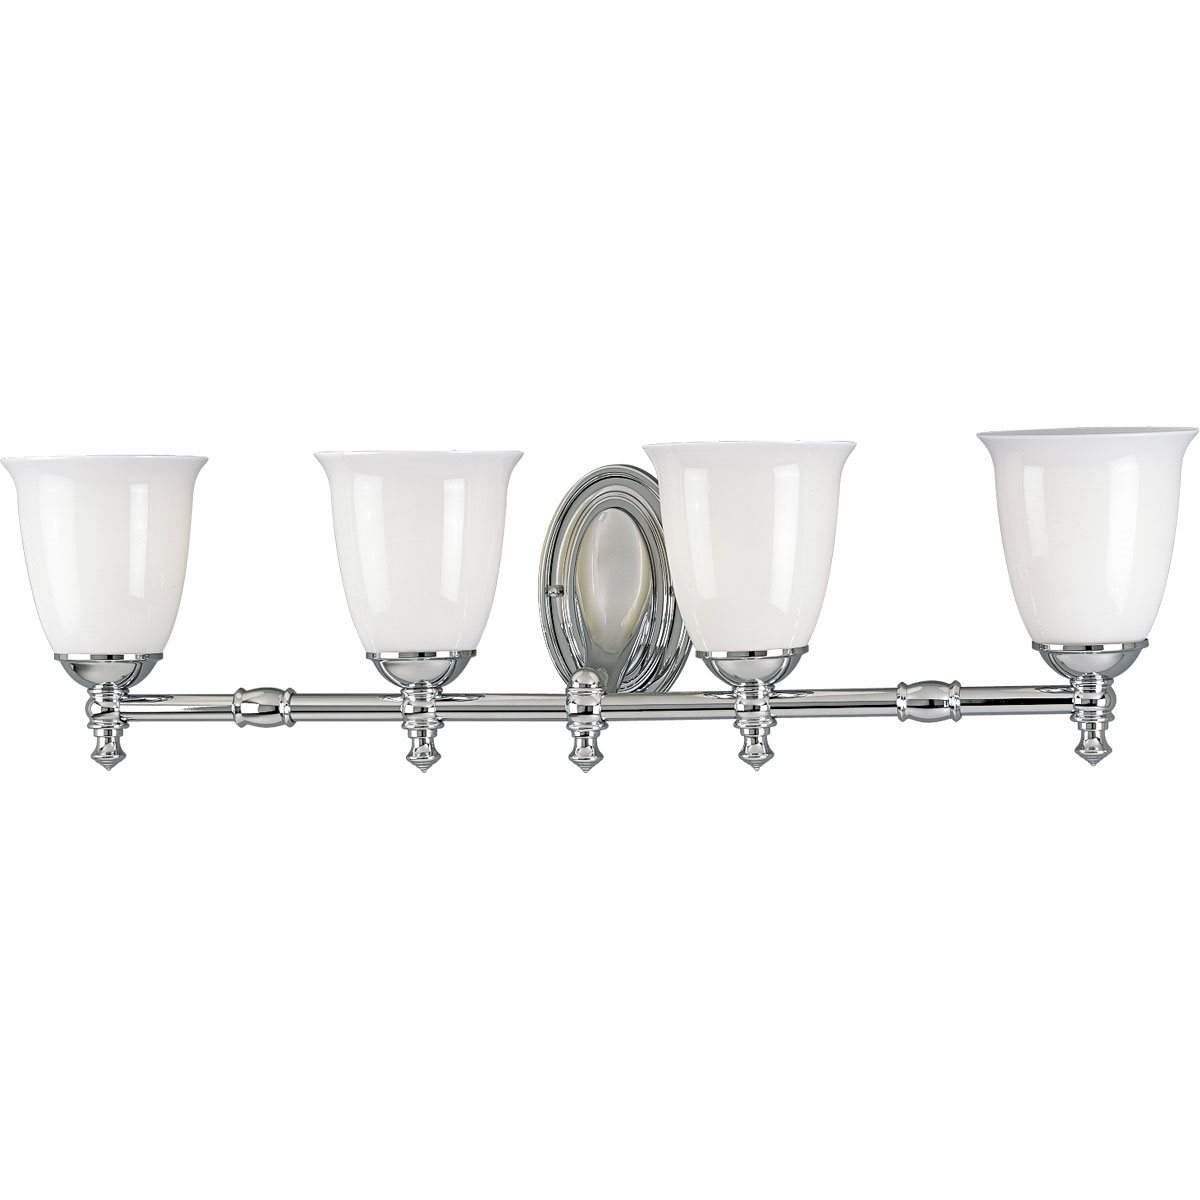 Delta Bathroom Vanity Lights : Delta P3041 Victorian Transitional Bathroom / Vanity Light PG-P3041